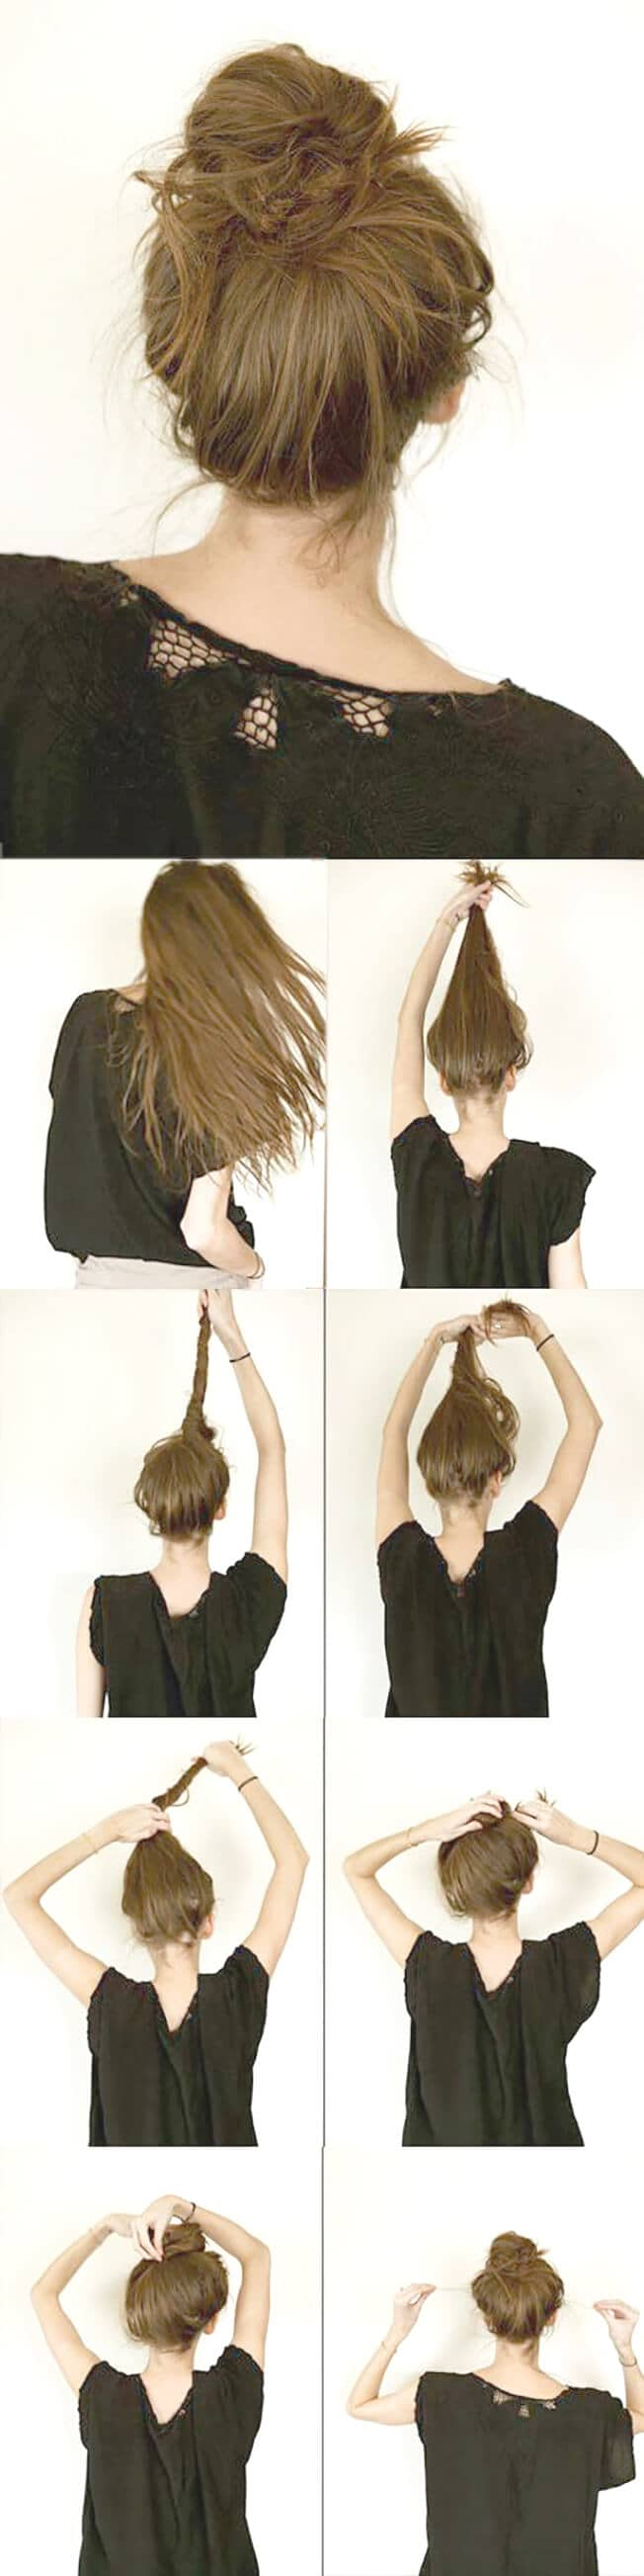 Simple Messy High Bun